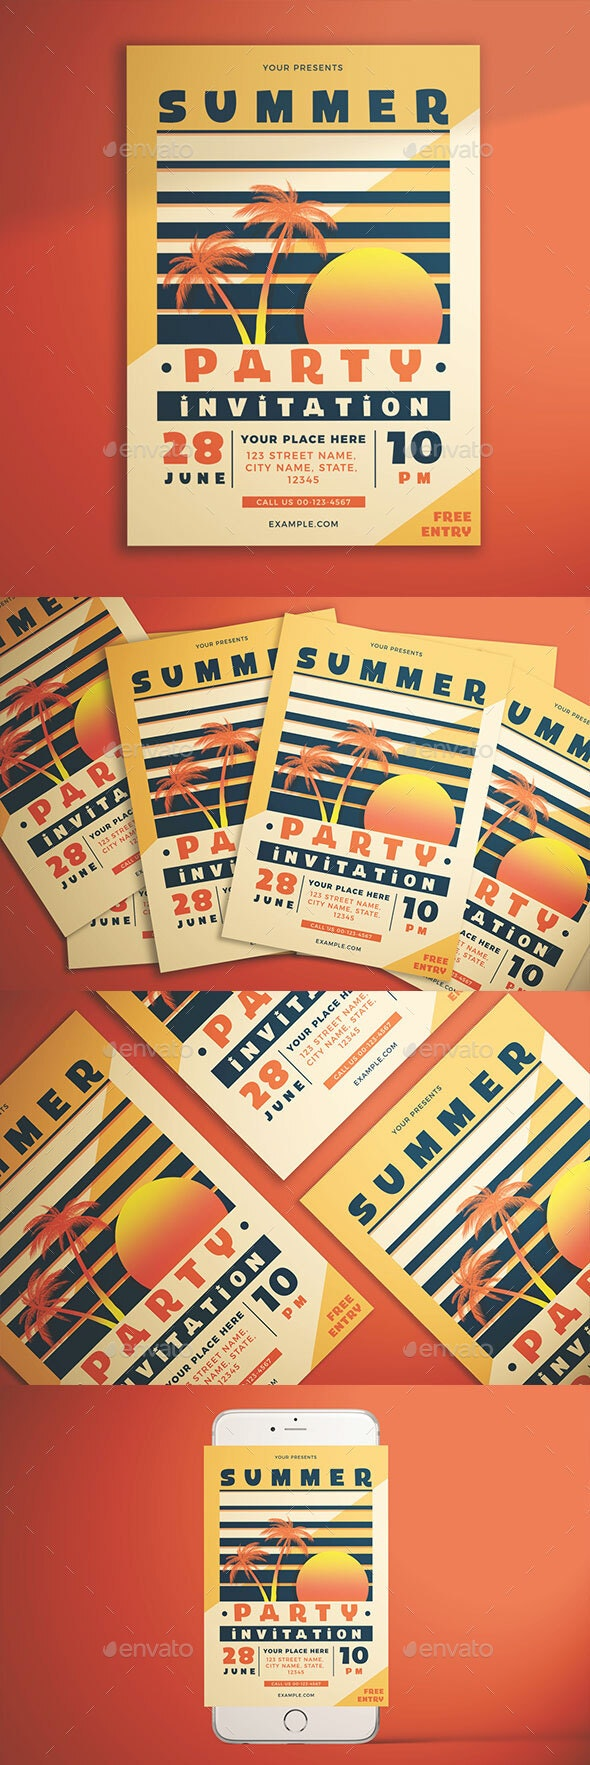 Summer Party Invitation Flyer - Clubs & Parties Events